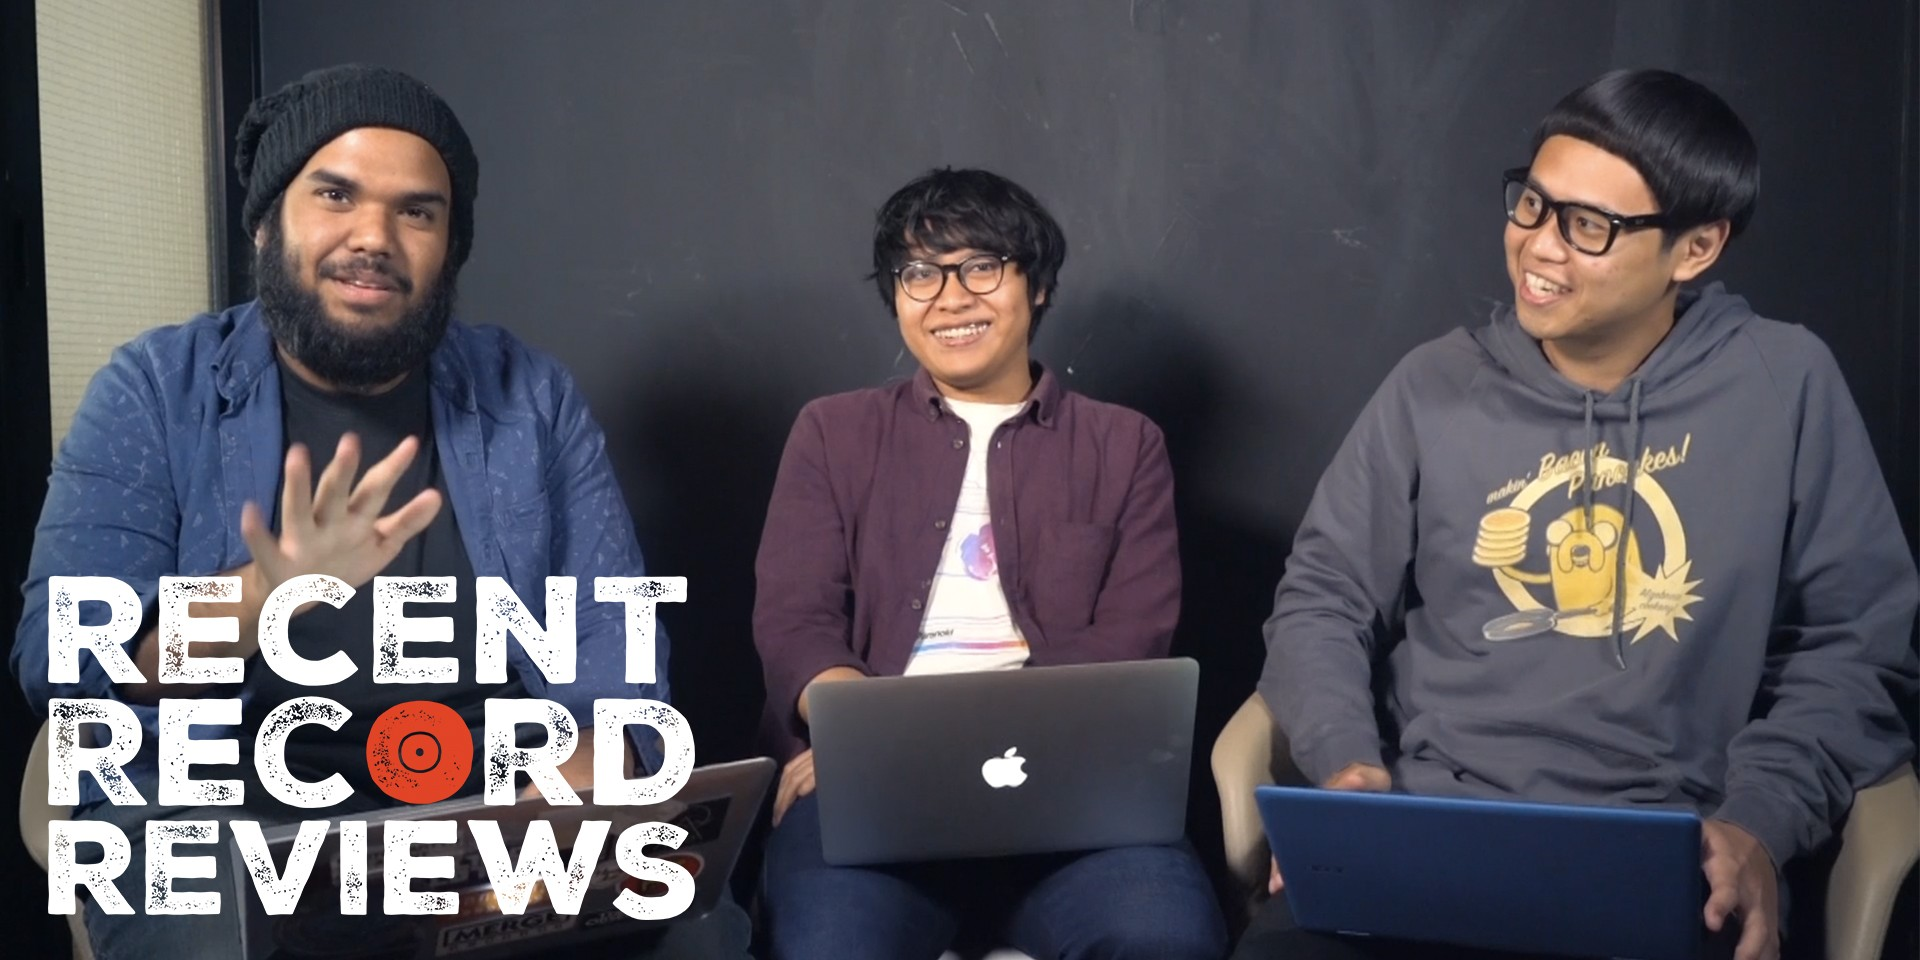 WATCH: Bandwagon Recent Record Reviews #012 - Shaky Wrists, asyraft, The Observatory